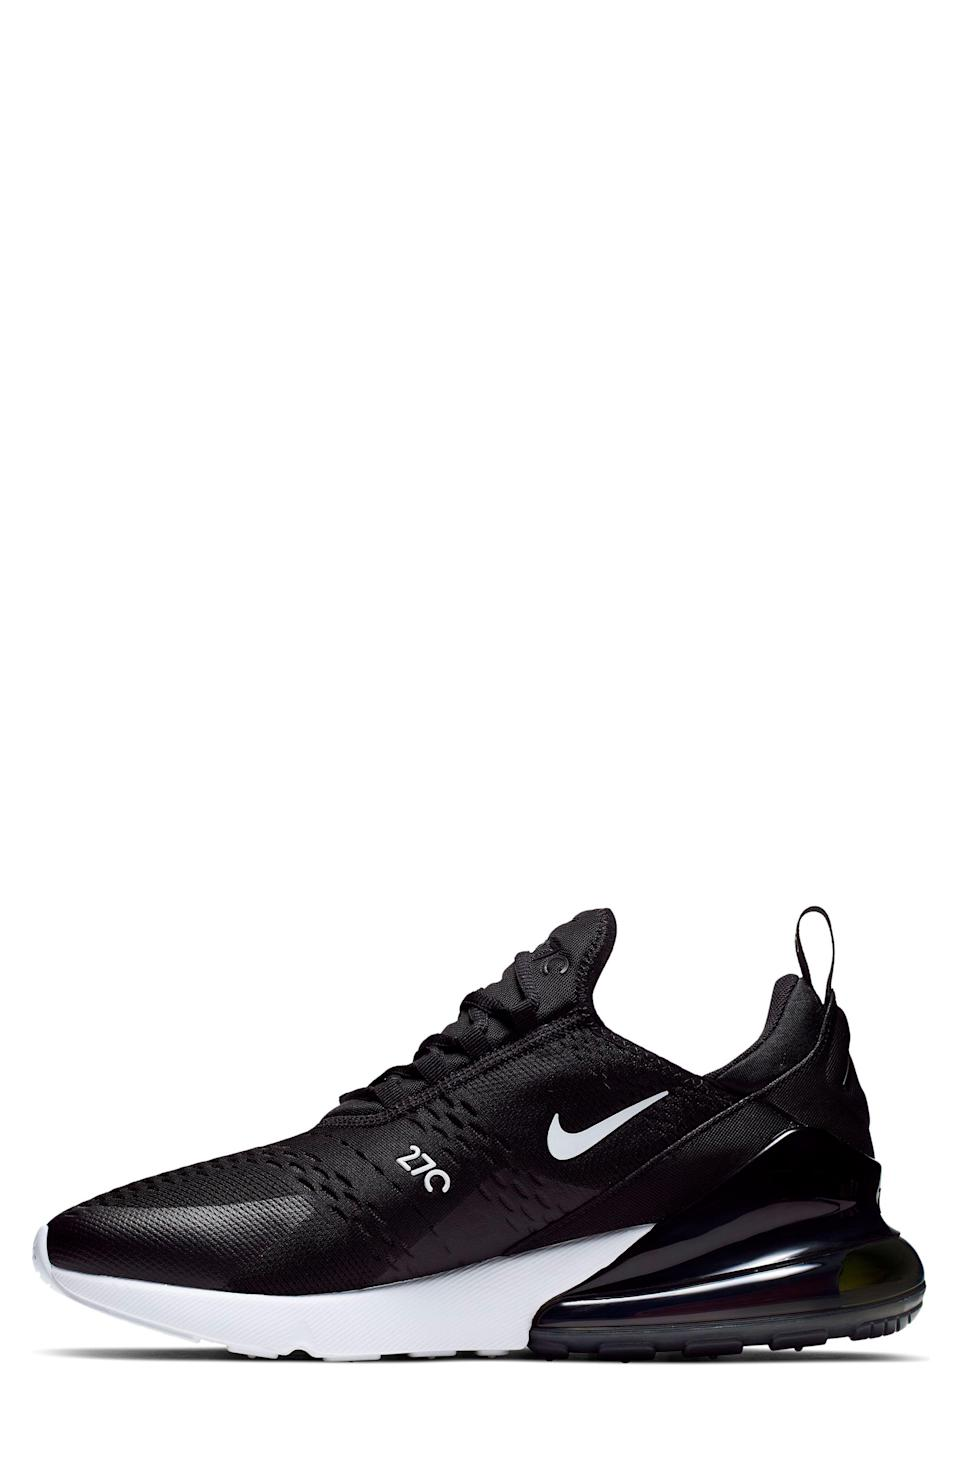 """<p><strong>NIKE</strong></p><p>nordstrom.com</p><p><a href=""""https://go.redirectingat.com?id=74968X1596630&url=https%3A%2F%2Fwww.nordstrom.com%2Fs%2Fnike-air-max-270-sneaker-men%2F4700645&sref=https%3A%2F%2Fwww.menshealth.com%2Fstyle%2Fg33510339%2Fnordstrom-anniversary-sale-2020%2F"""" rel=""""nofollow noopener"""" target=""""_blank"""" data-ylk=""""slk:BUY IT HERE"""" class=""""link rapid-noclick-resp"""">BUY IT HERE </a></p><p><strong><del>$150</del> $111.90 (25% off)</strong></p><p>Between its cloud-like cushioning and snug, knit uppers, these Nike sneakers are the perfect combination of stylish and functional. </p>"""